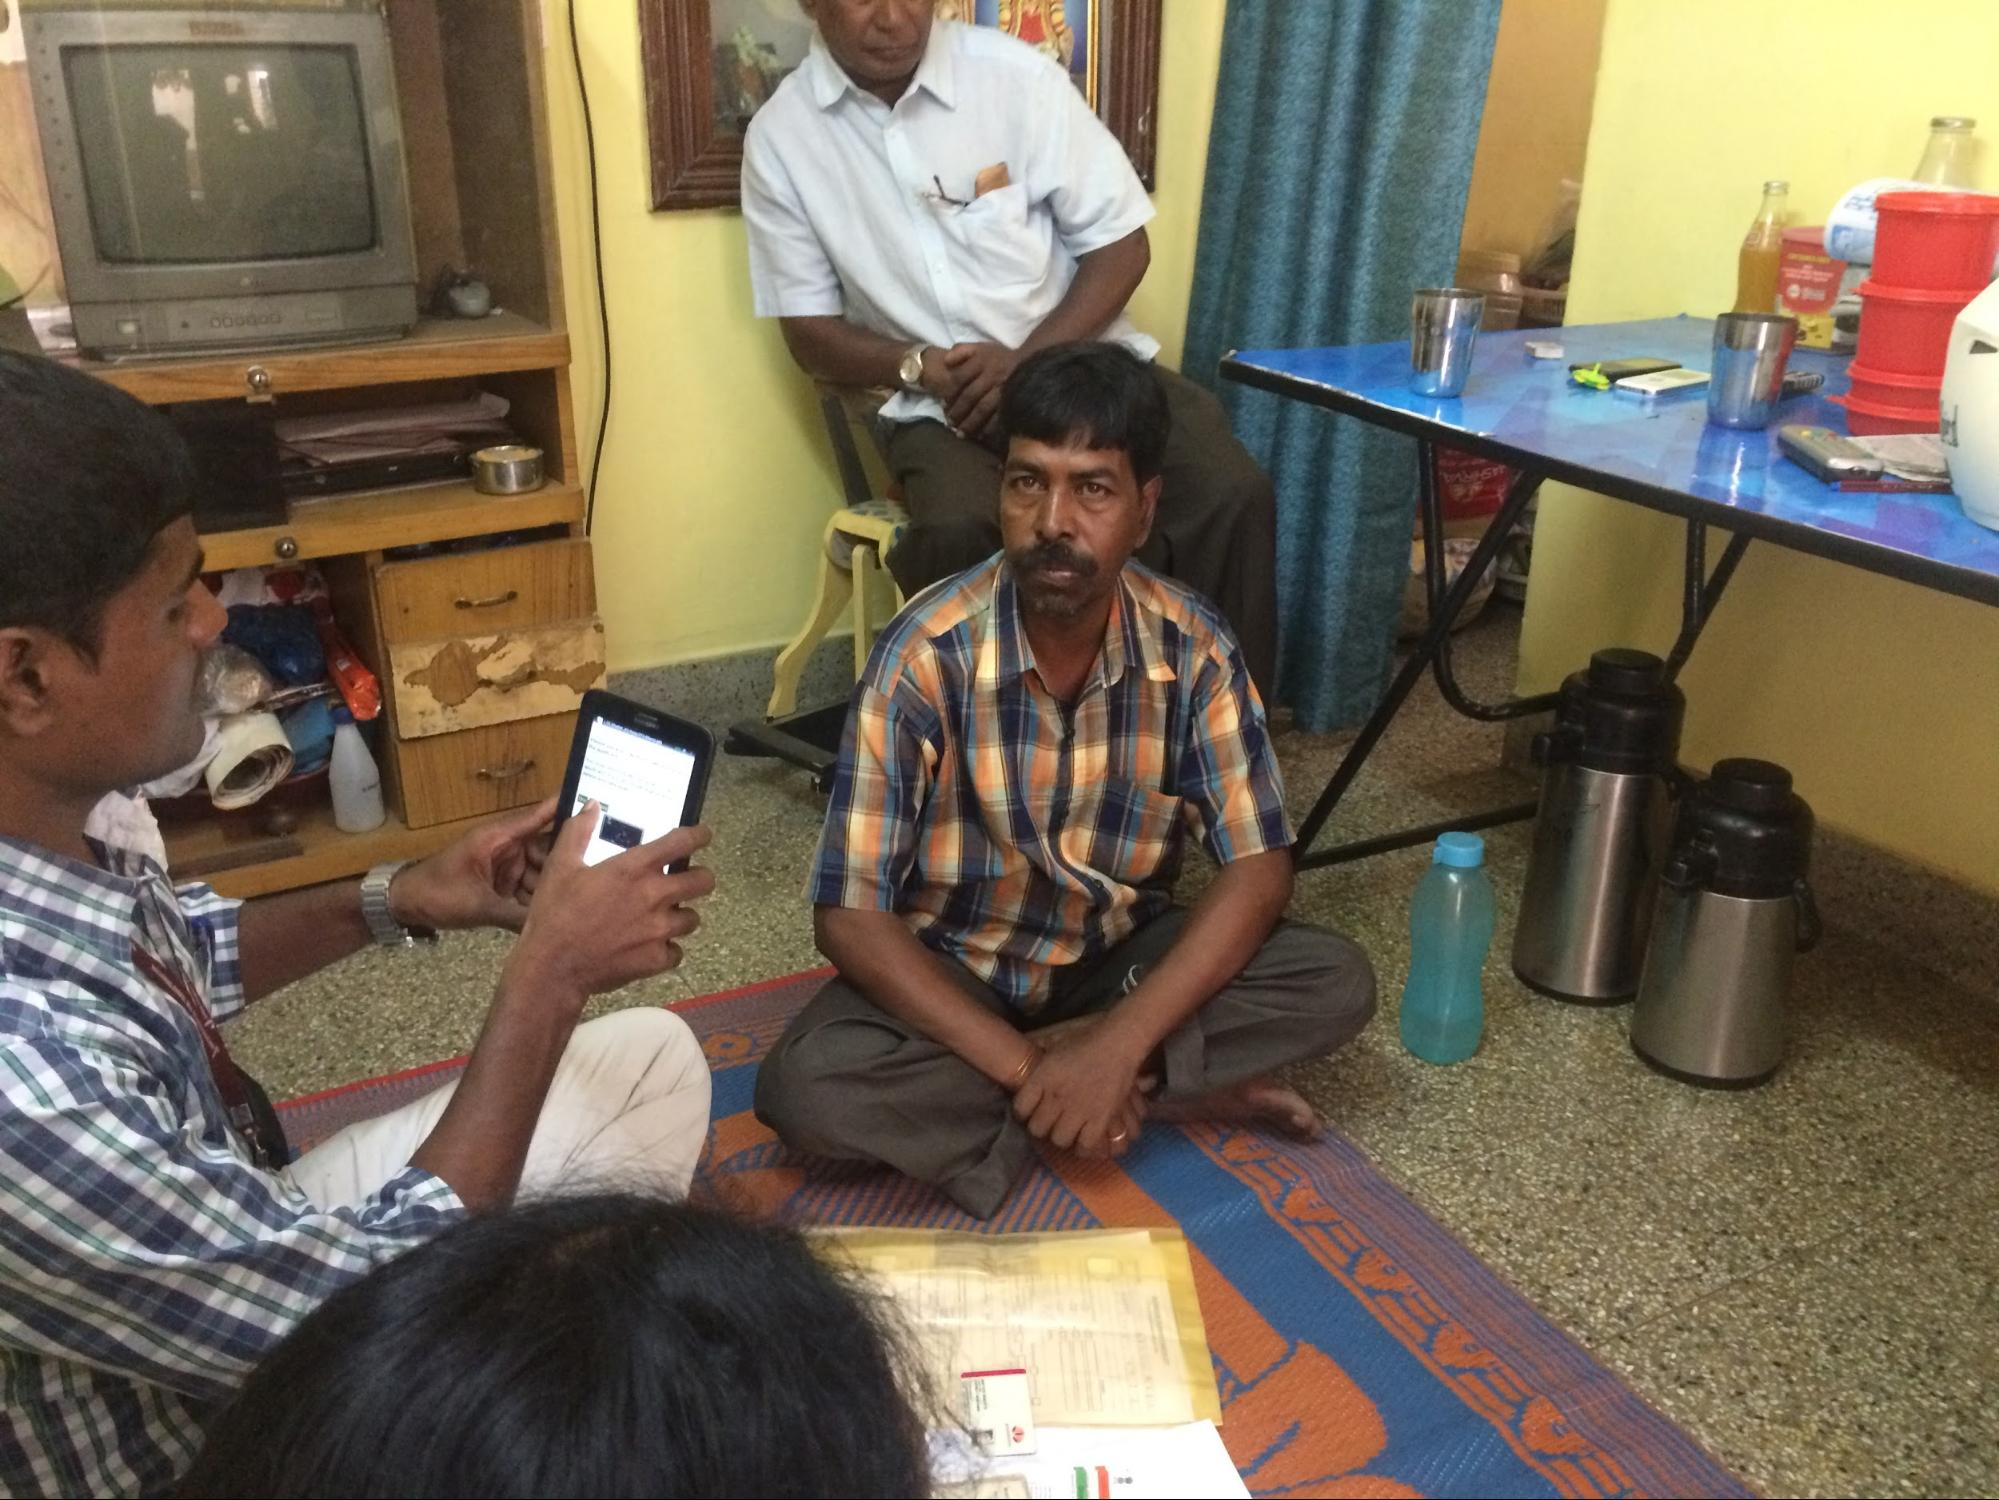 An agent helps a microentrepreneur apply for a loan in India